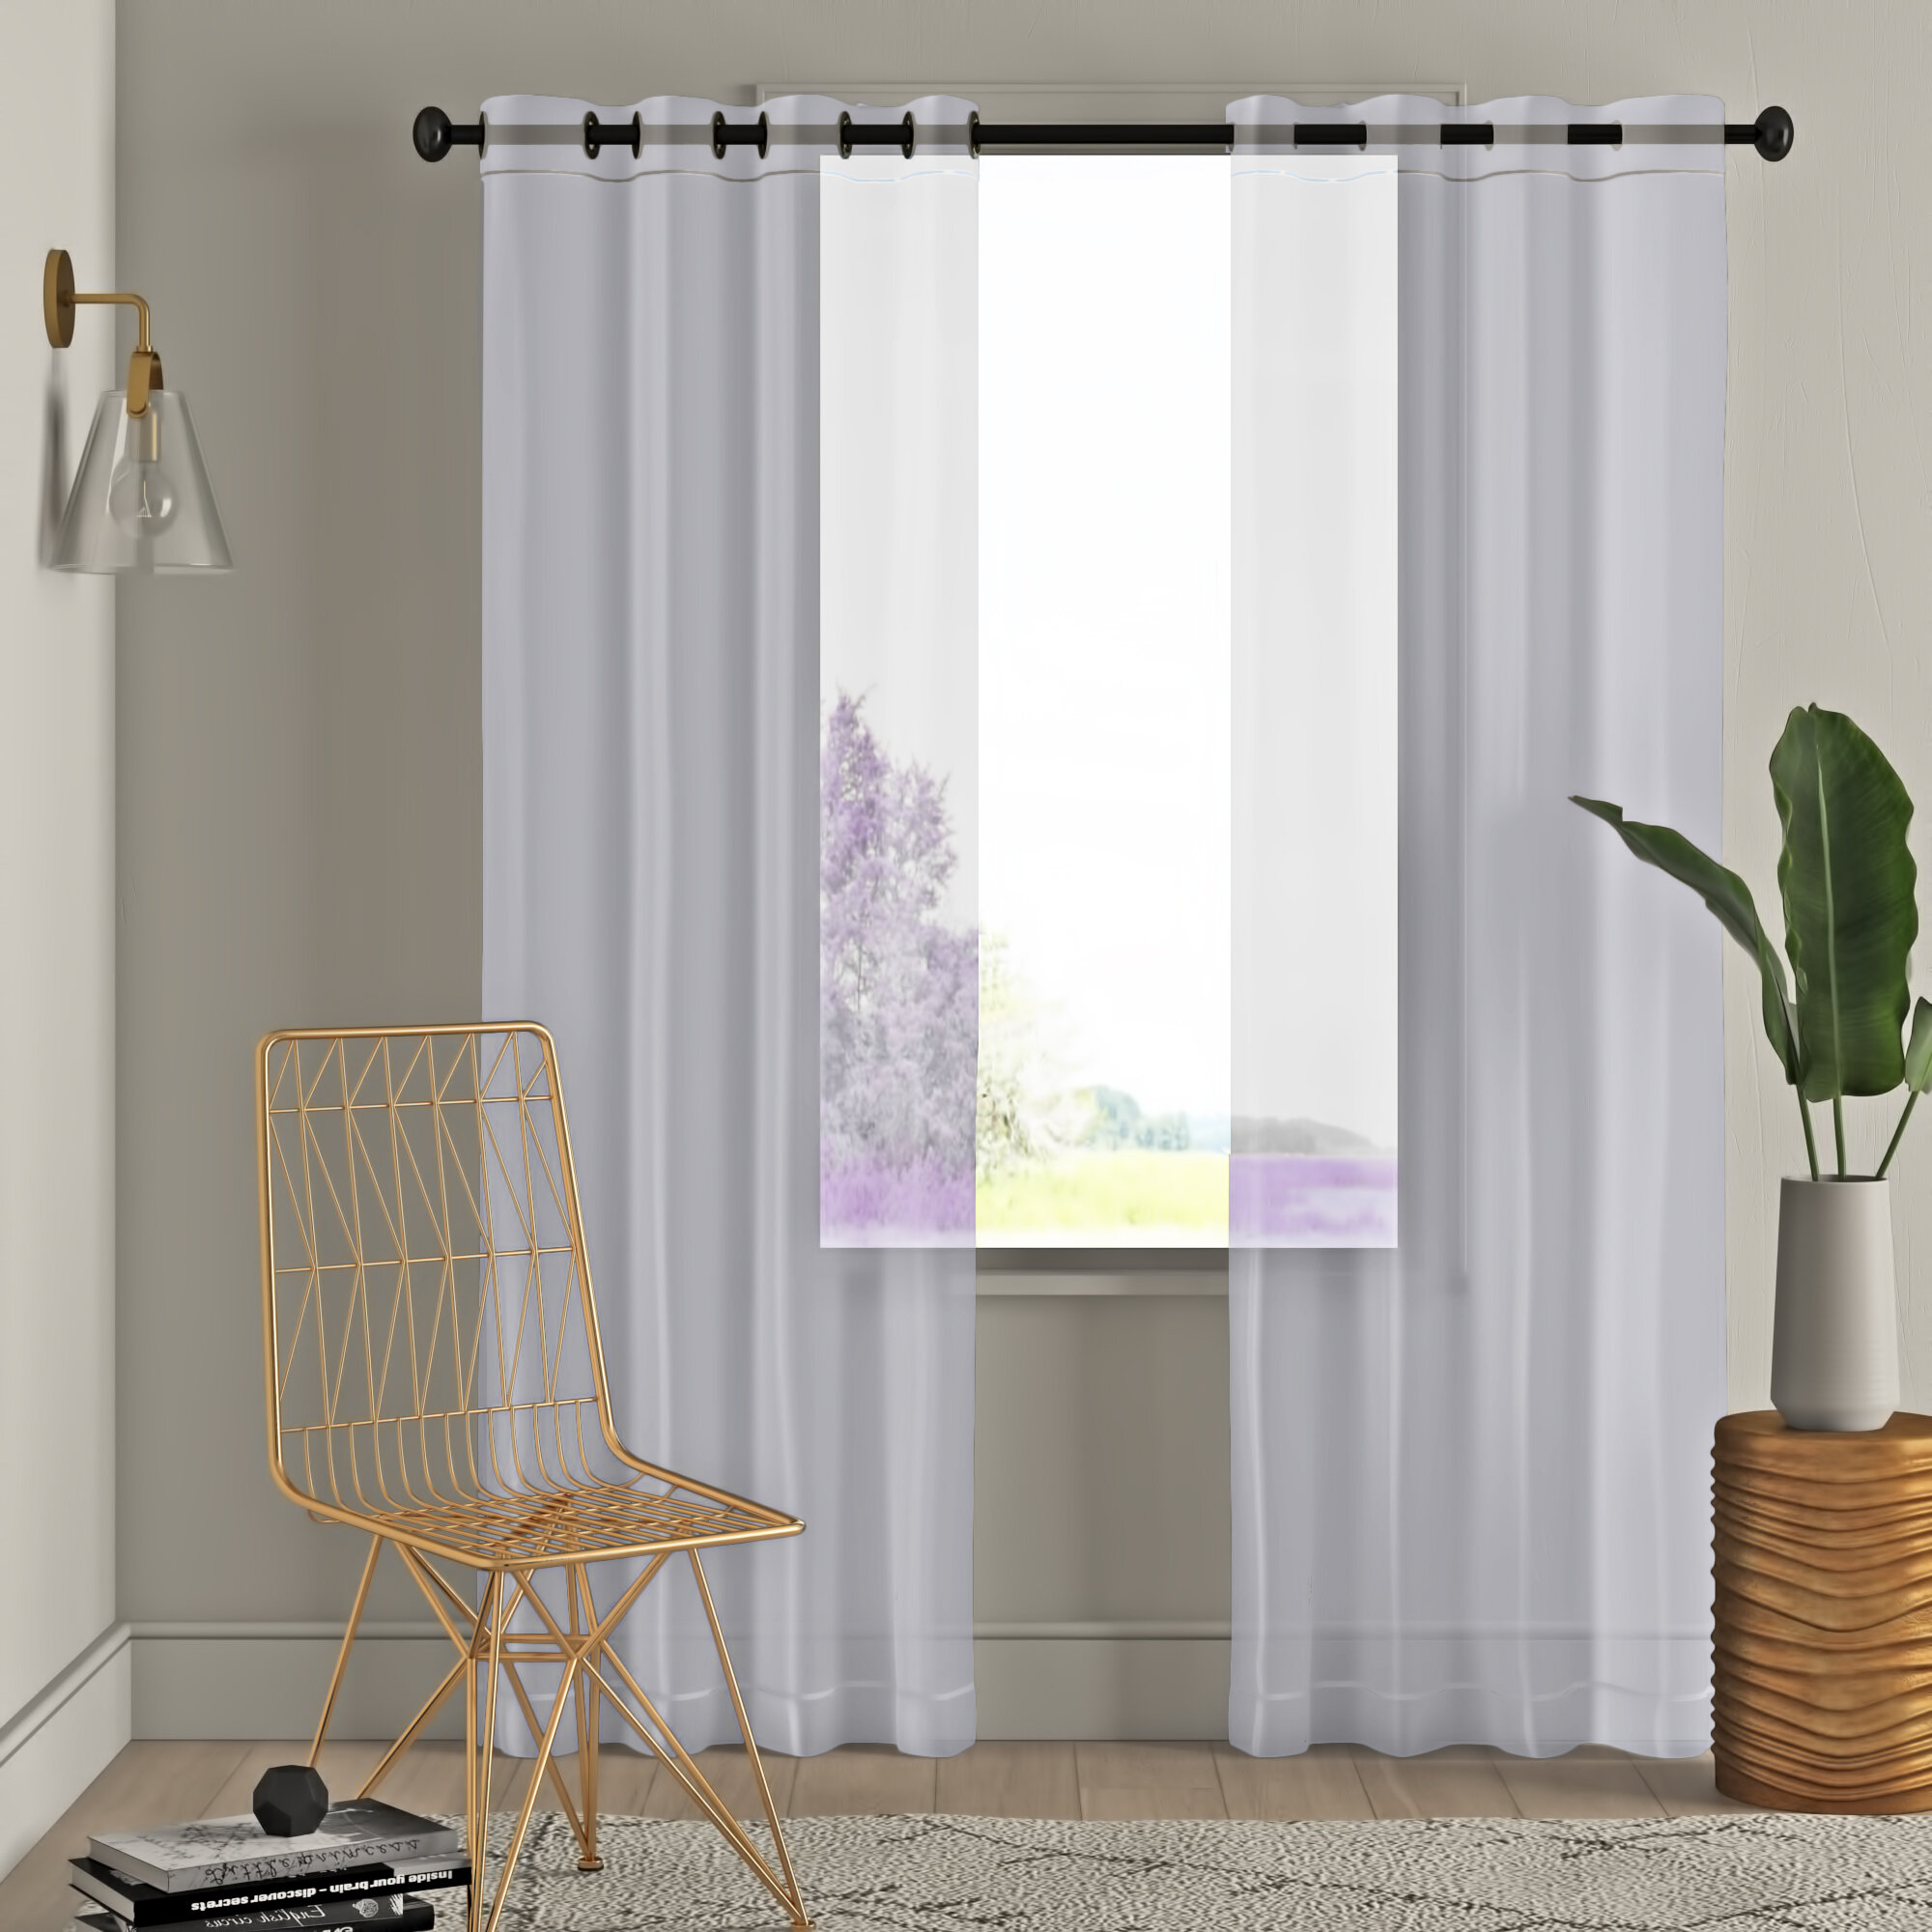 Living Room Curtains Drapes You Ll Love In 2021 Wayfair